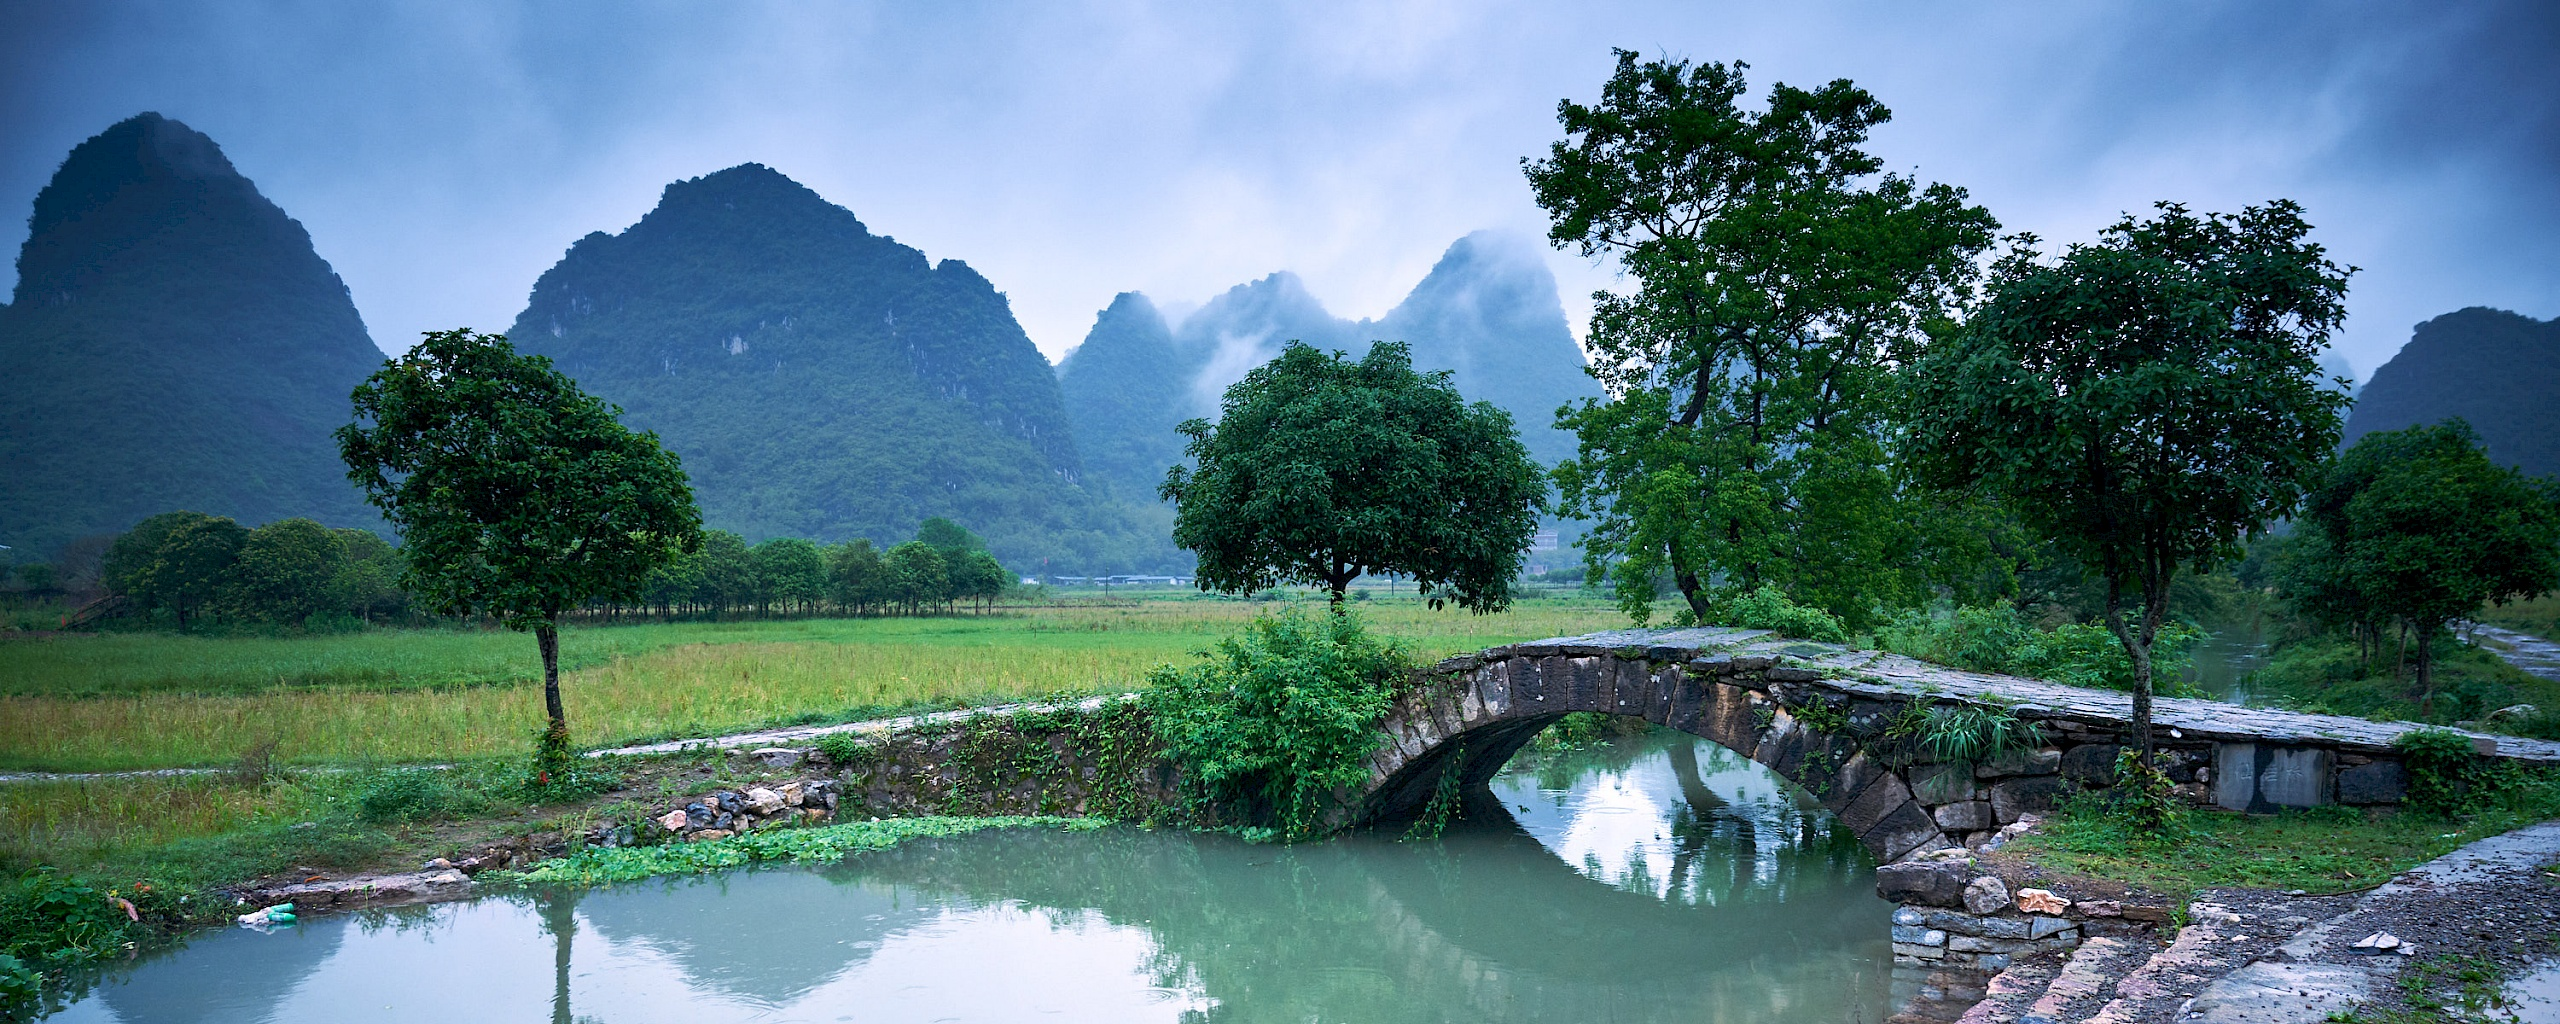 dsc05866-china-yangsuo-oldest-bridge-2017-littlediscoveries_net_1.jpg